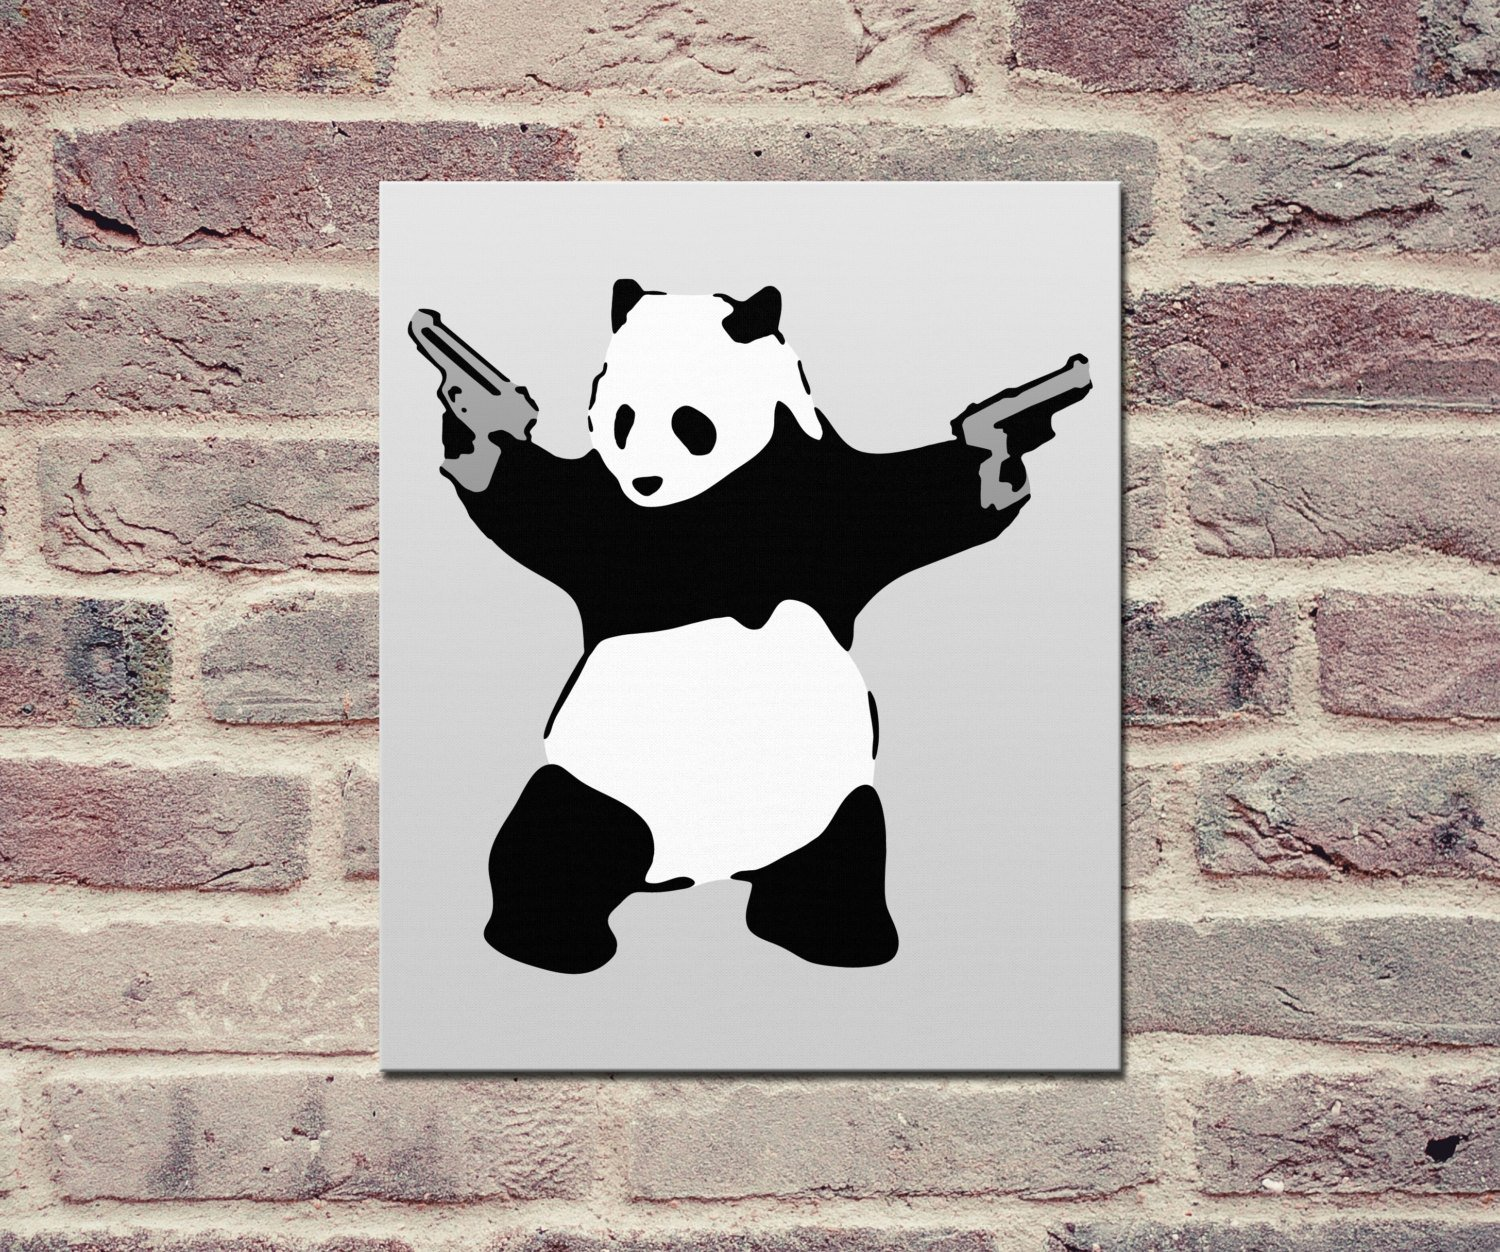 "Banksy, Panda with Guns (24"" x 36"") - Canvas Wrap Print"